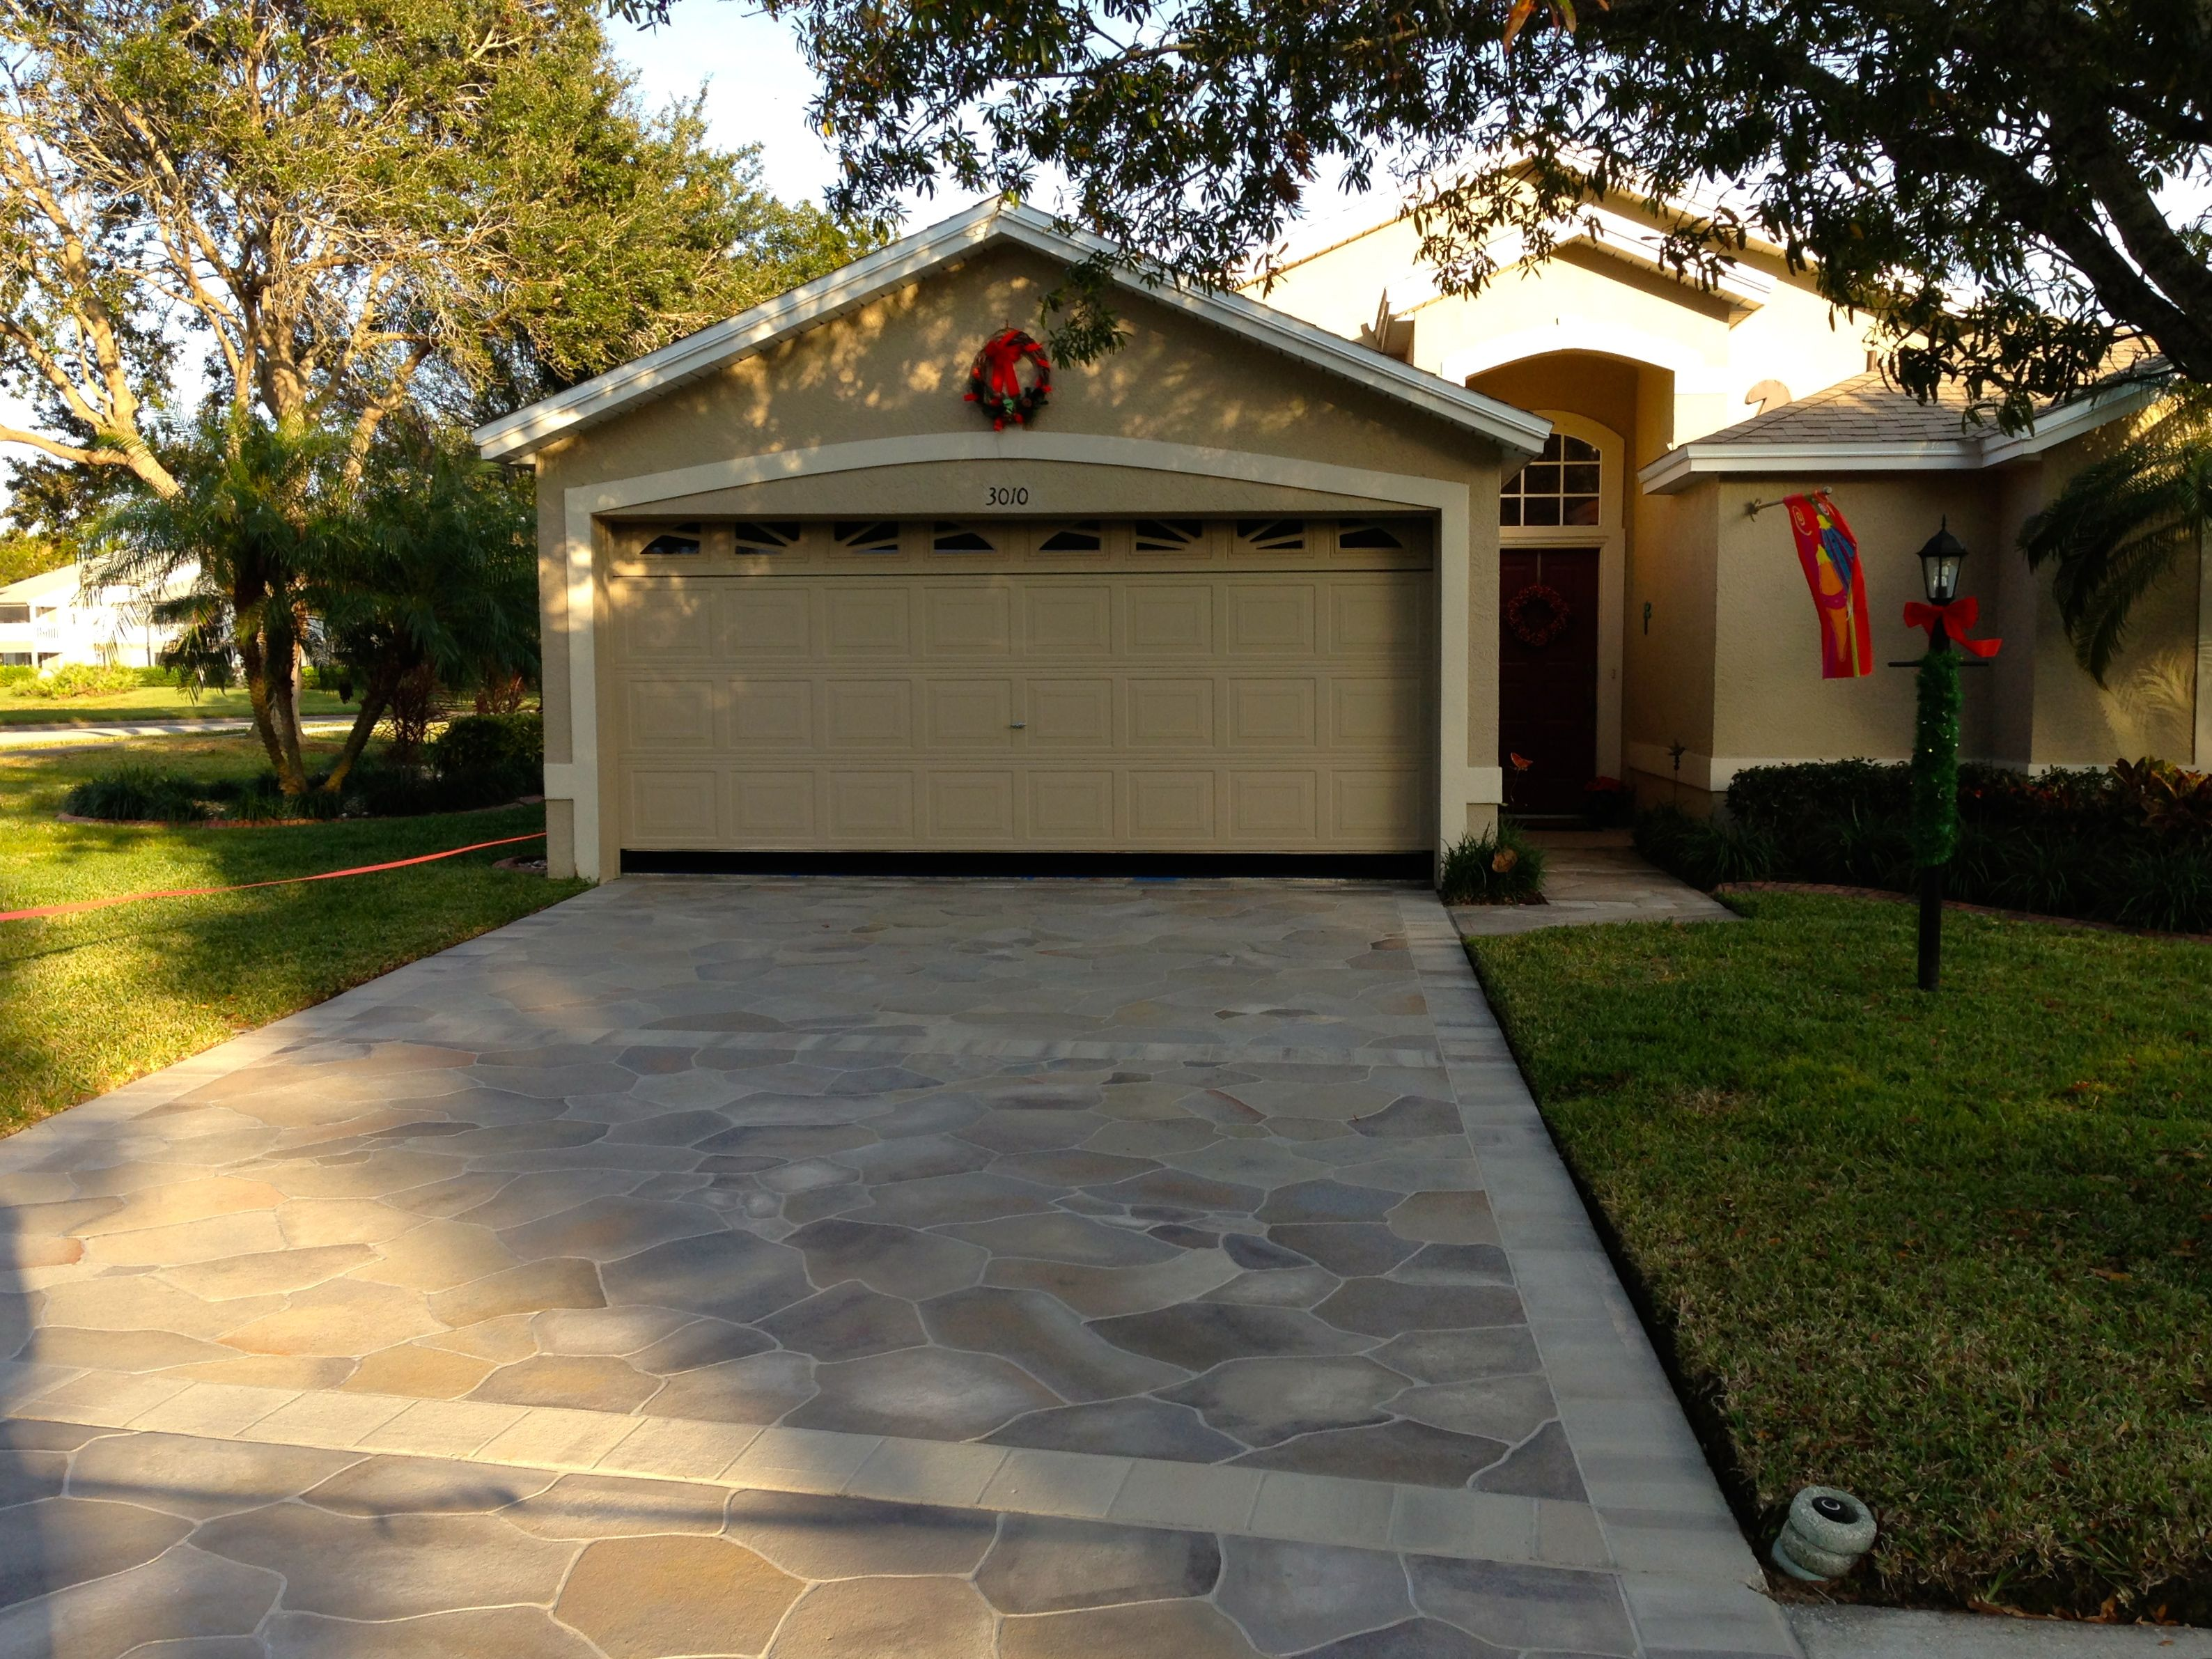 painted driveways the villages florida concrete designs florida driveway decorating ideas - Concrete Driveway Design Ideas